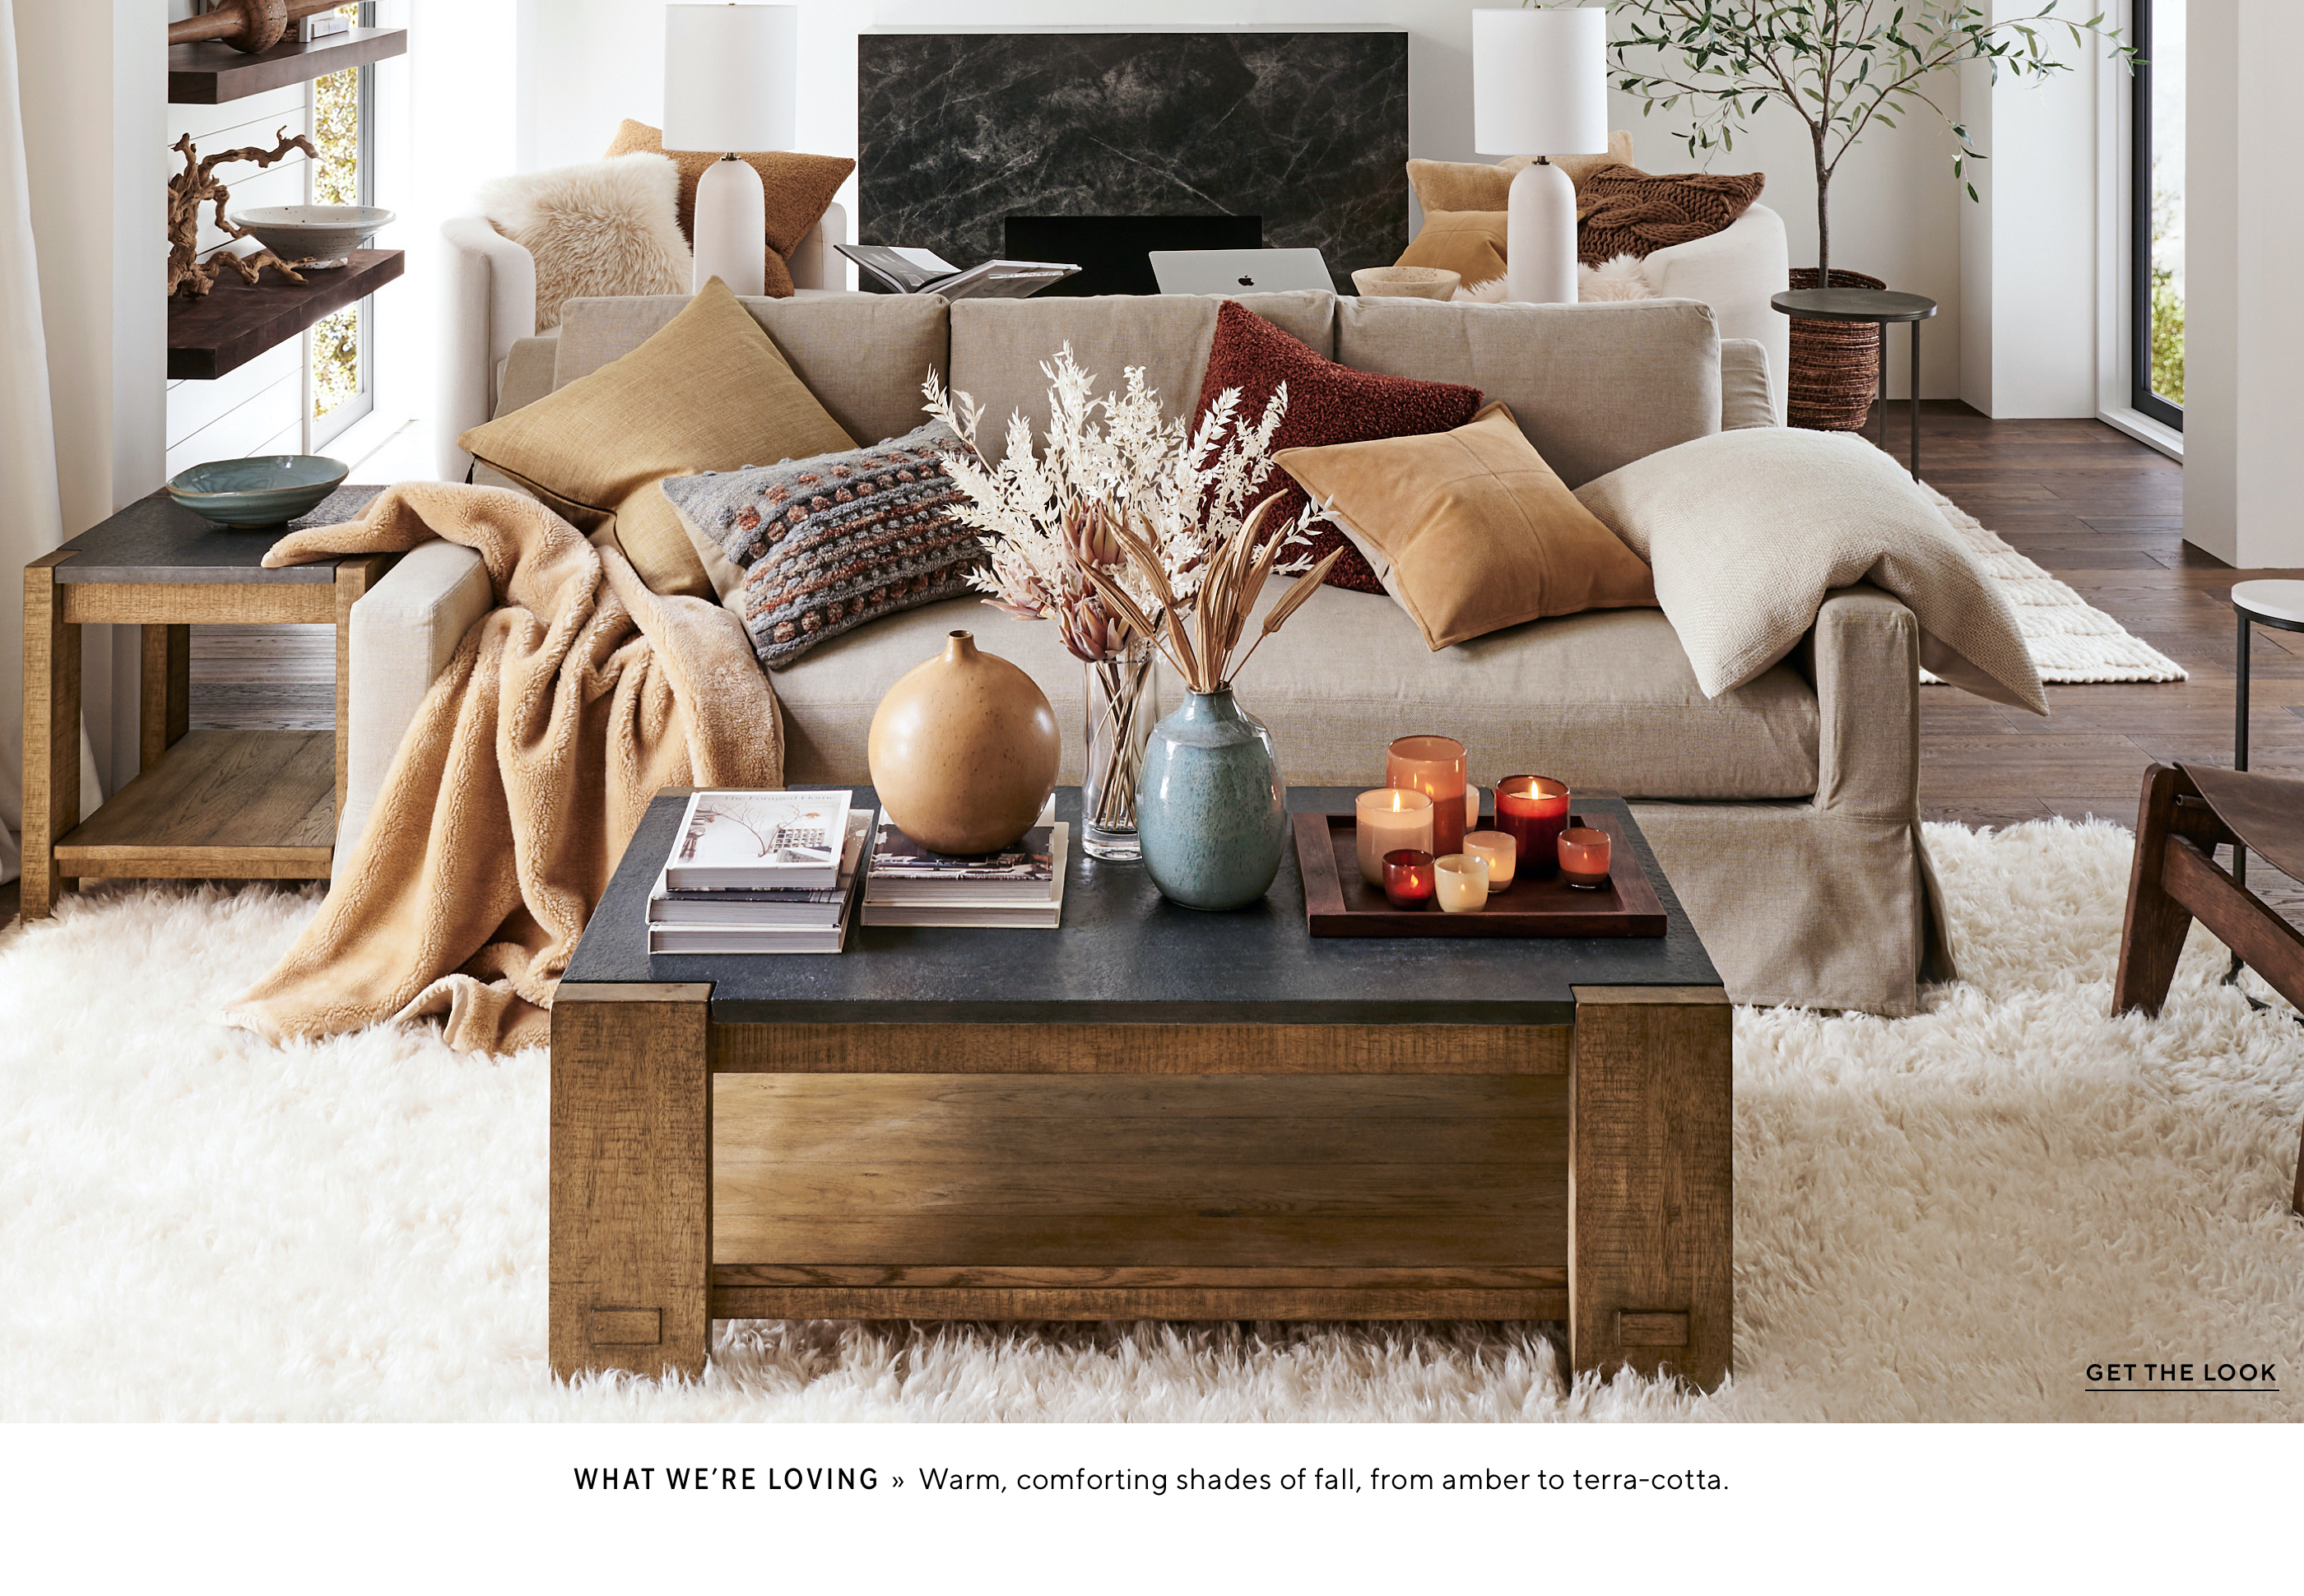 tan gold and cognac colour scheme in a living room setting from Pottery Barn